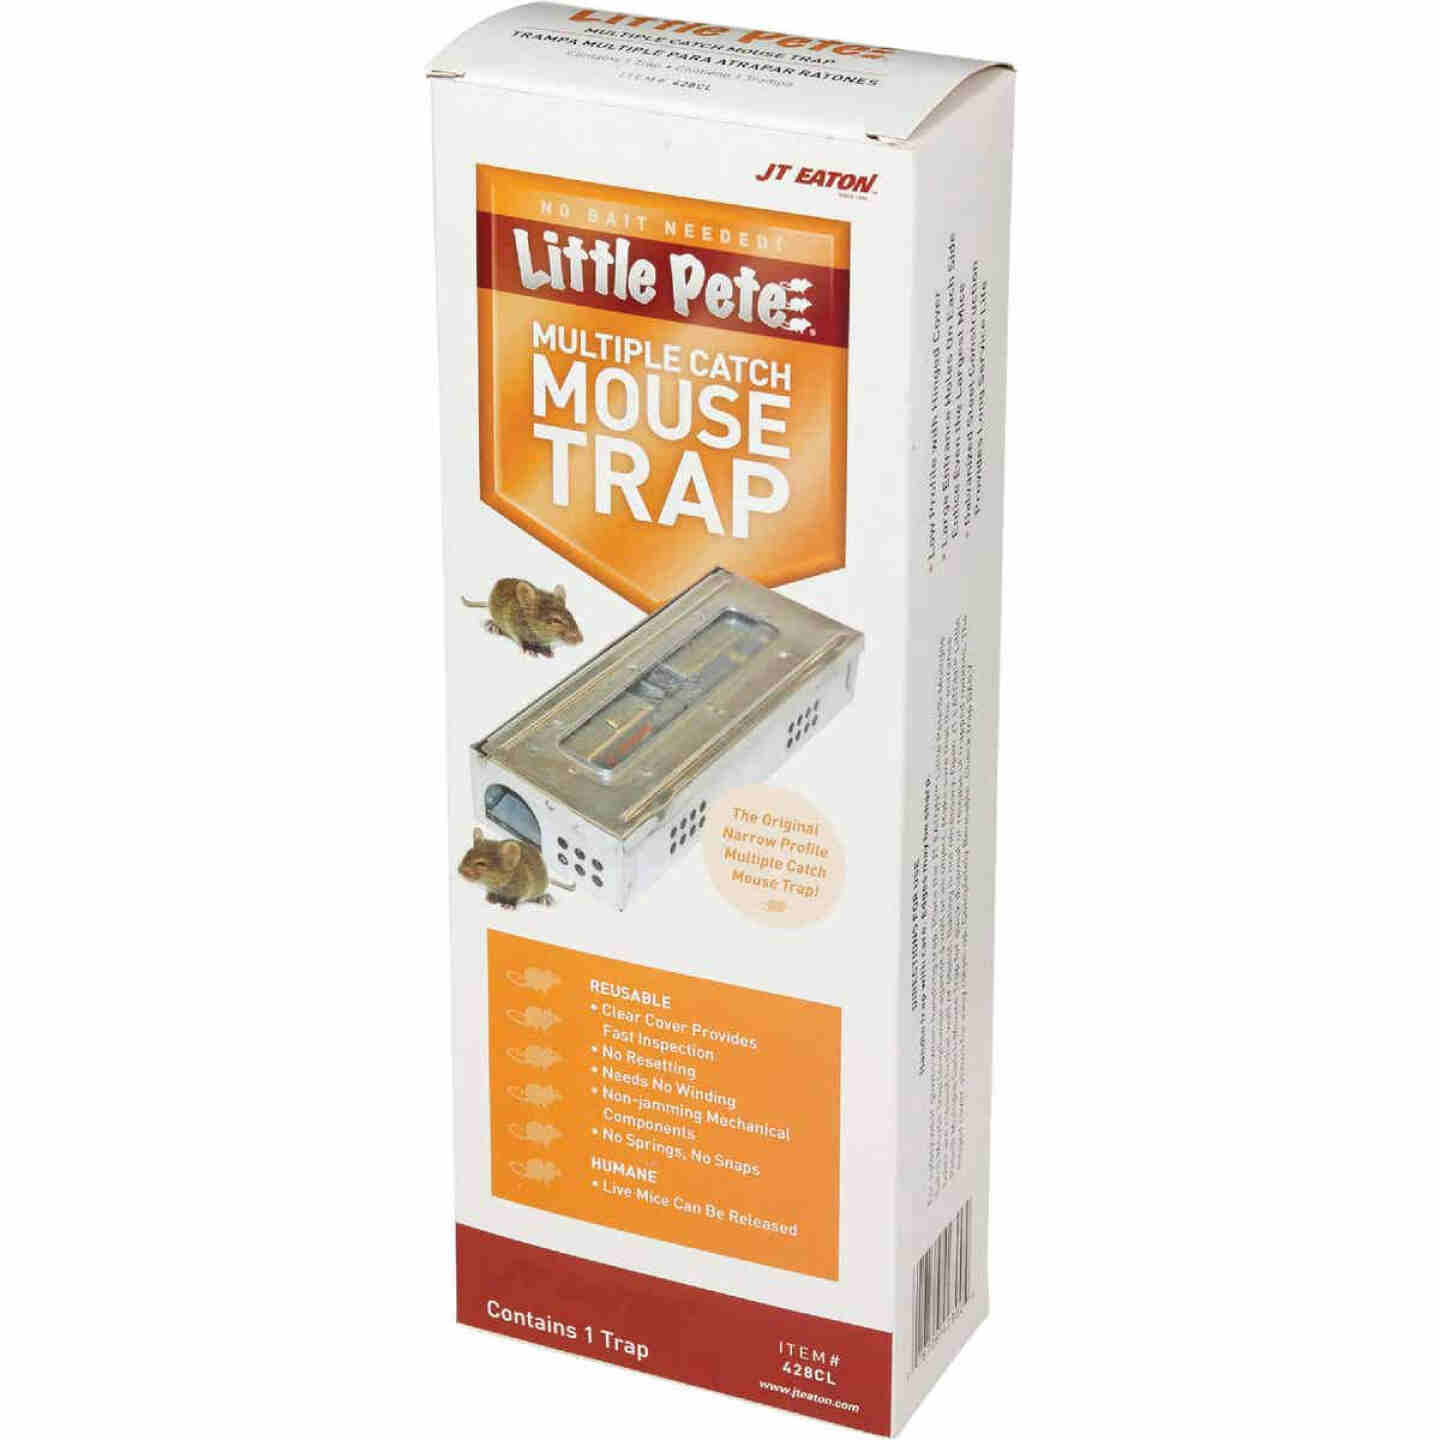 JT Eaton Little Pete Mechanical Mouse Trap with Clear Inspection Window (1-Pack) Image 3